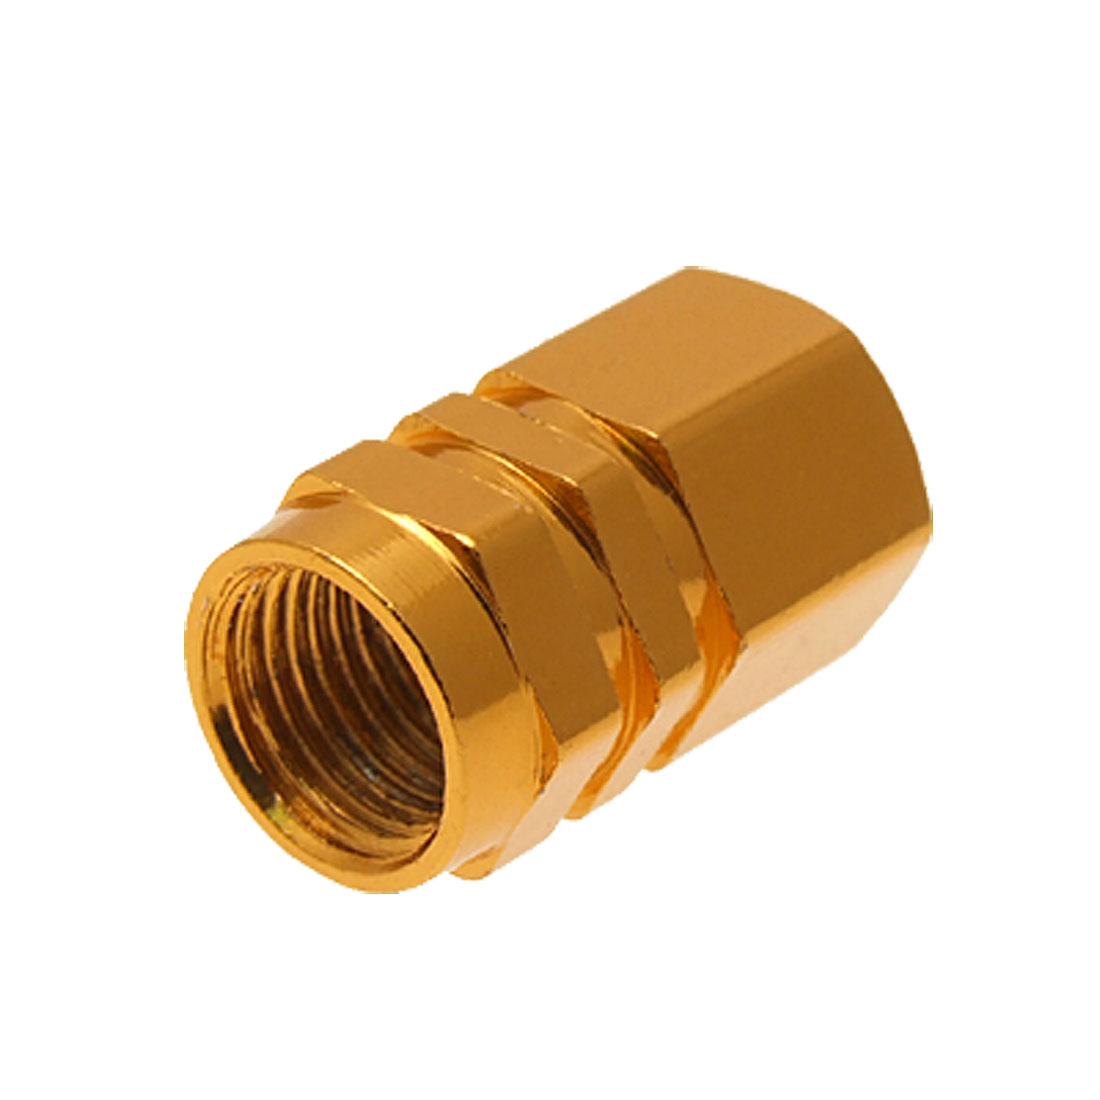 4pcs Tire Tyre Valves Stems Caps Covers Golden